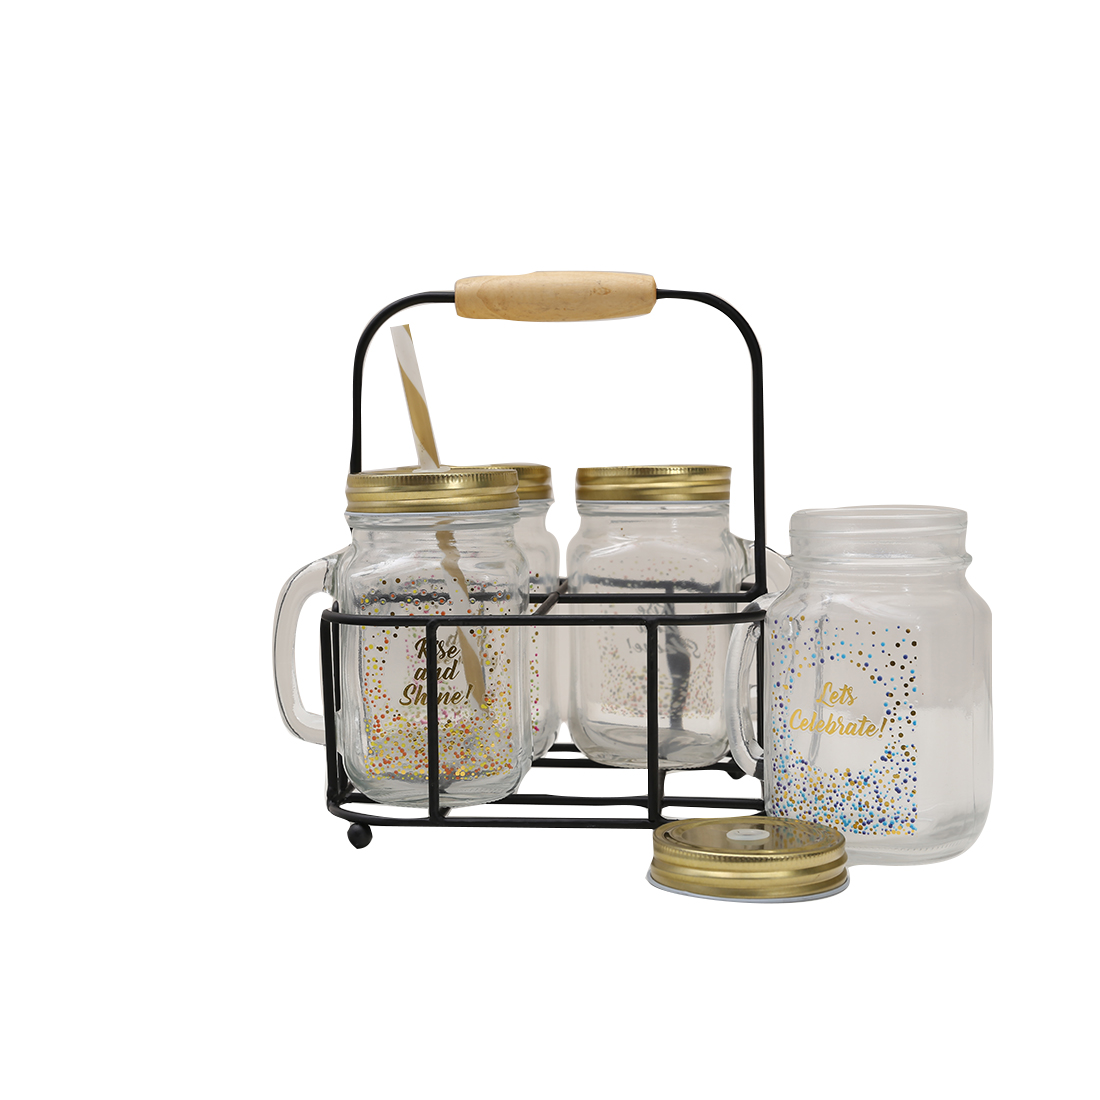 Celebration Mason Jars Set Of 4 With Stand Glass Mason Jars in Transparent Colour by HomeTown